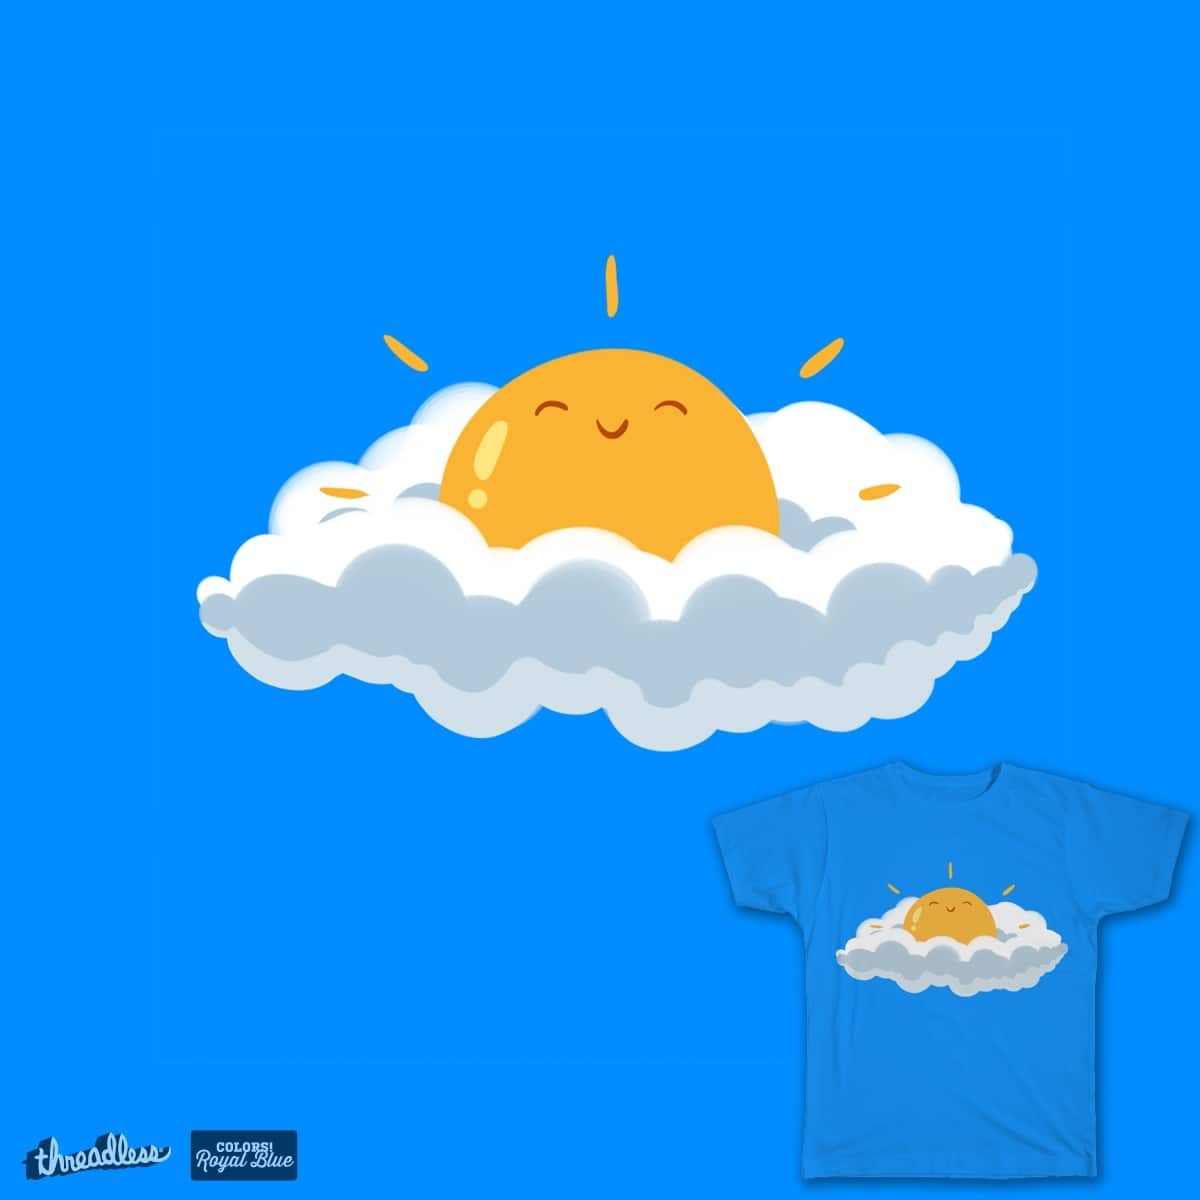 Sunny Side Up by WaffleFactory on Threadless